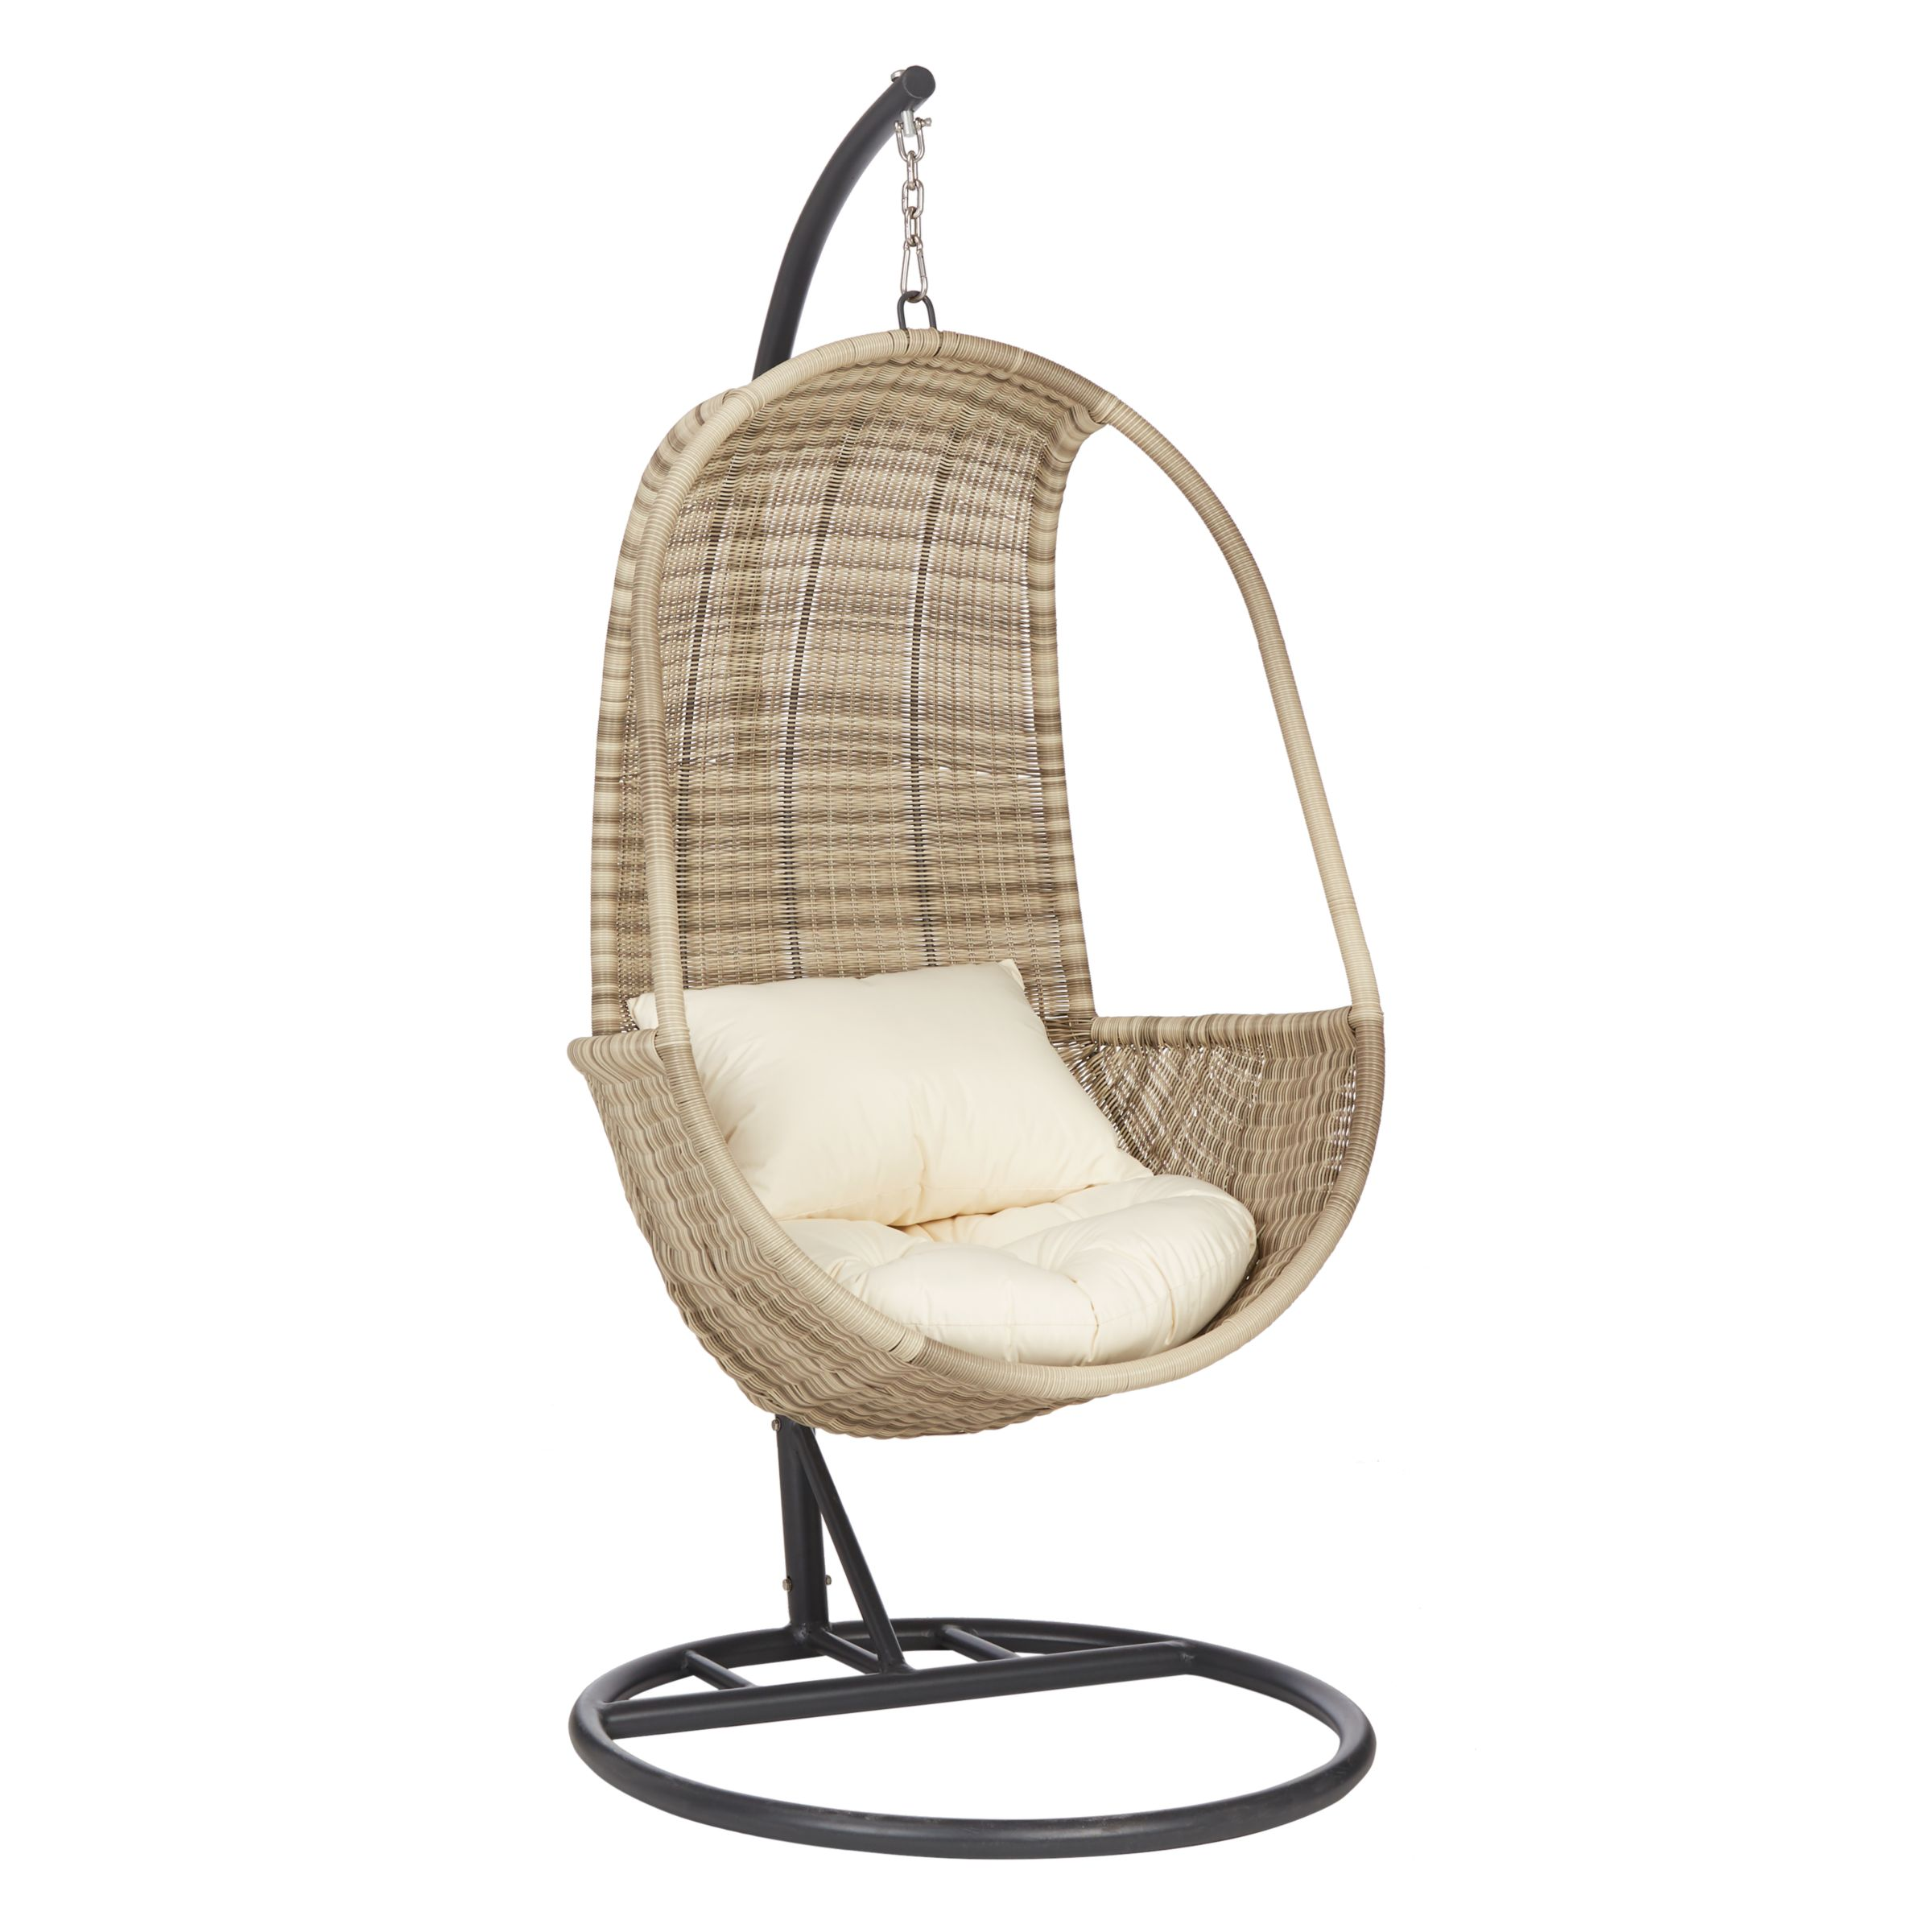 Wicker Egg Chairs For Sale John Lewis Partners Dante Pod Hanging Chair At John Lewis Partners